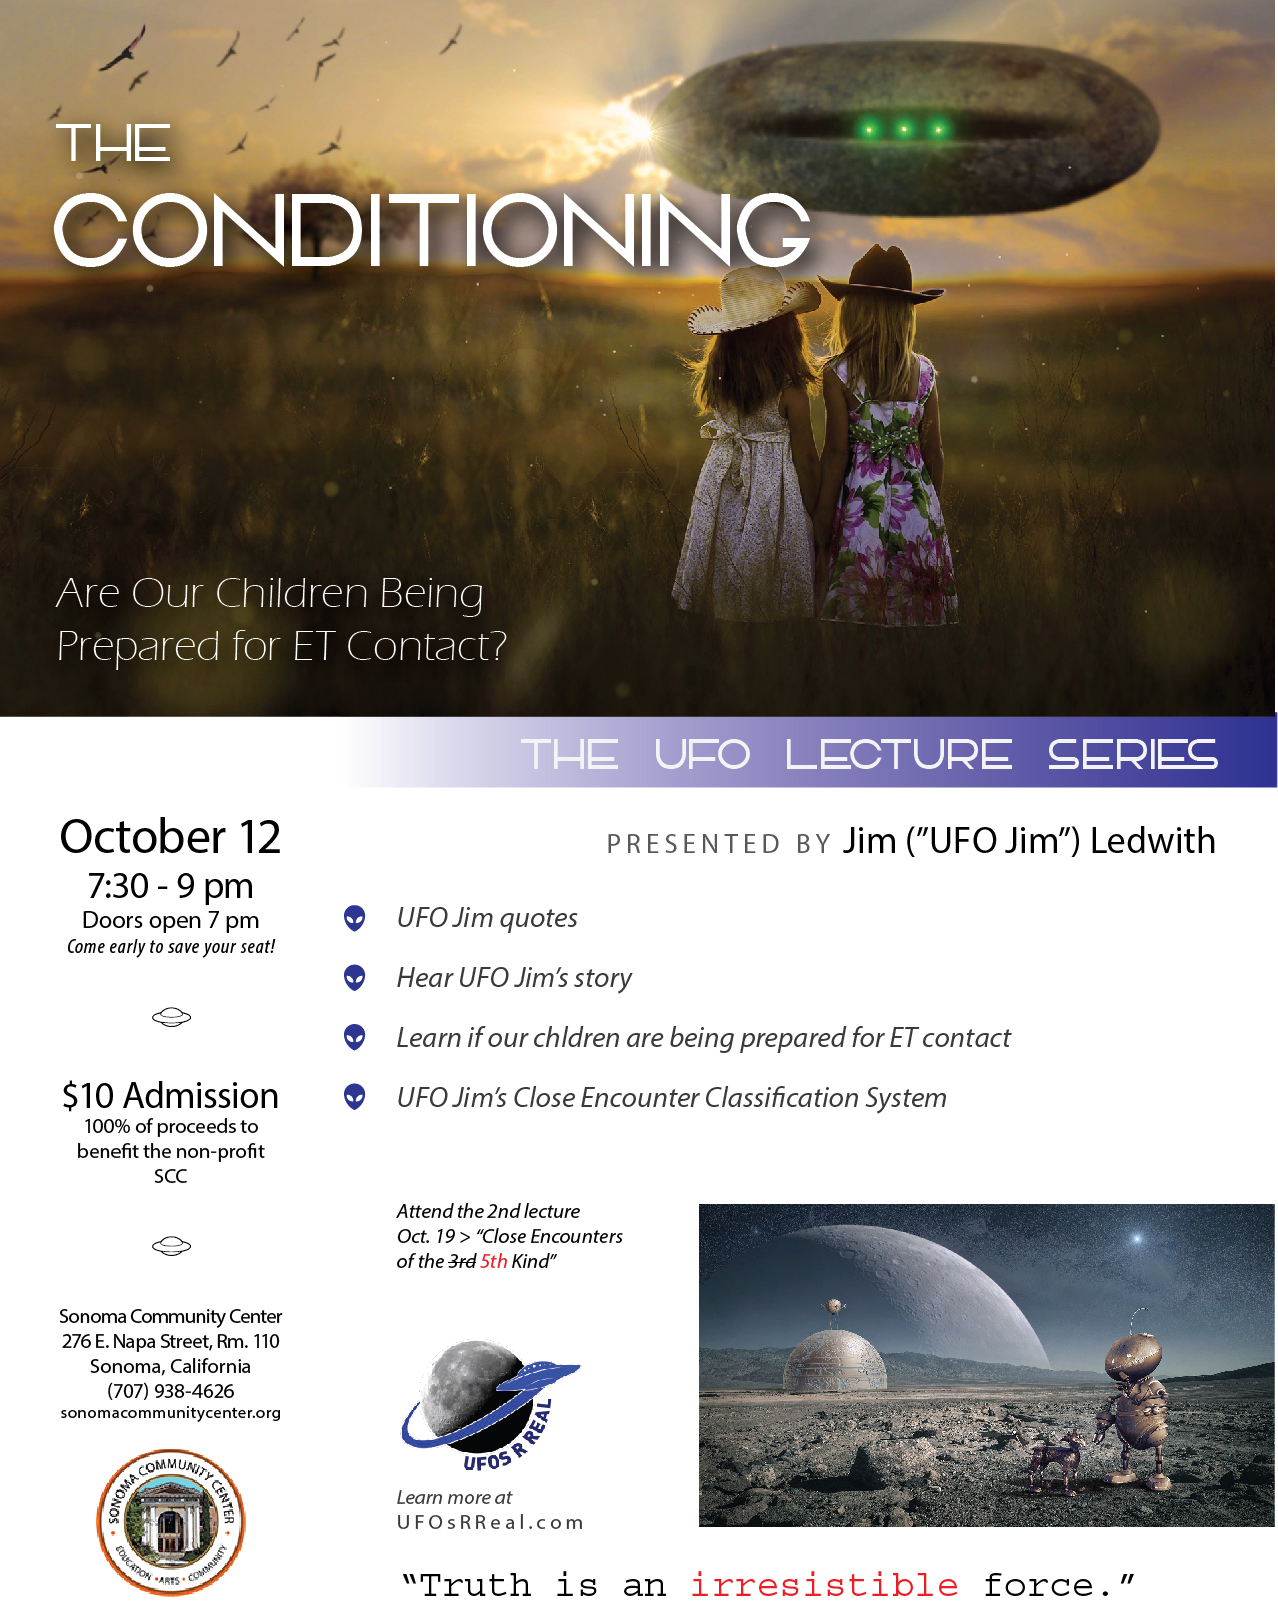 The Conditioning Oct 12